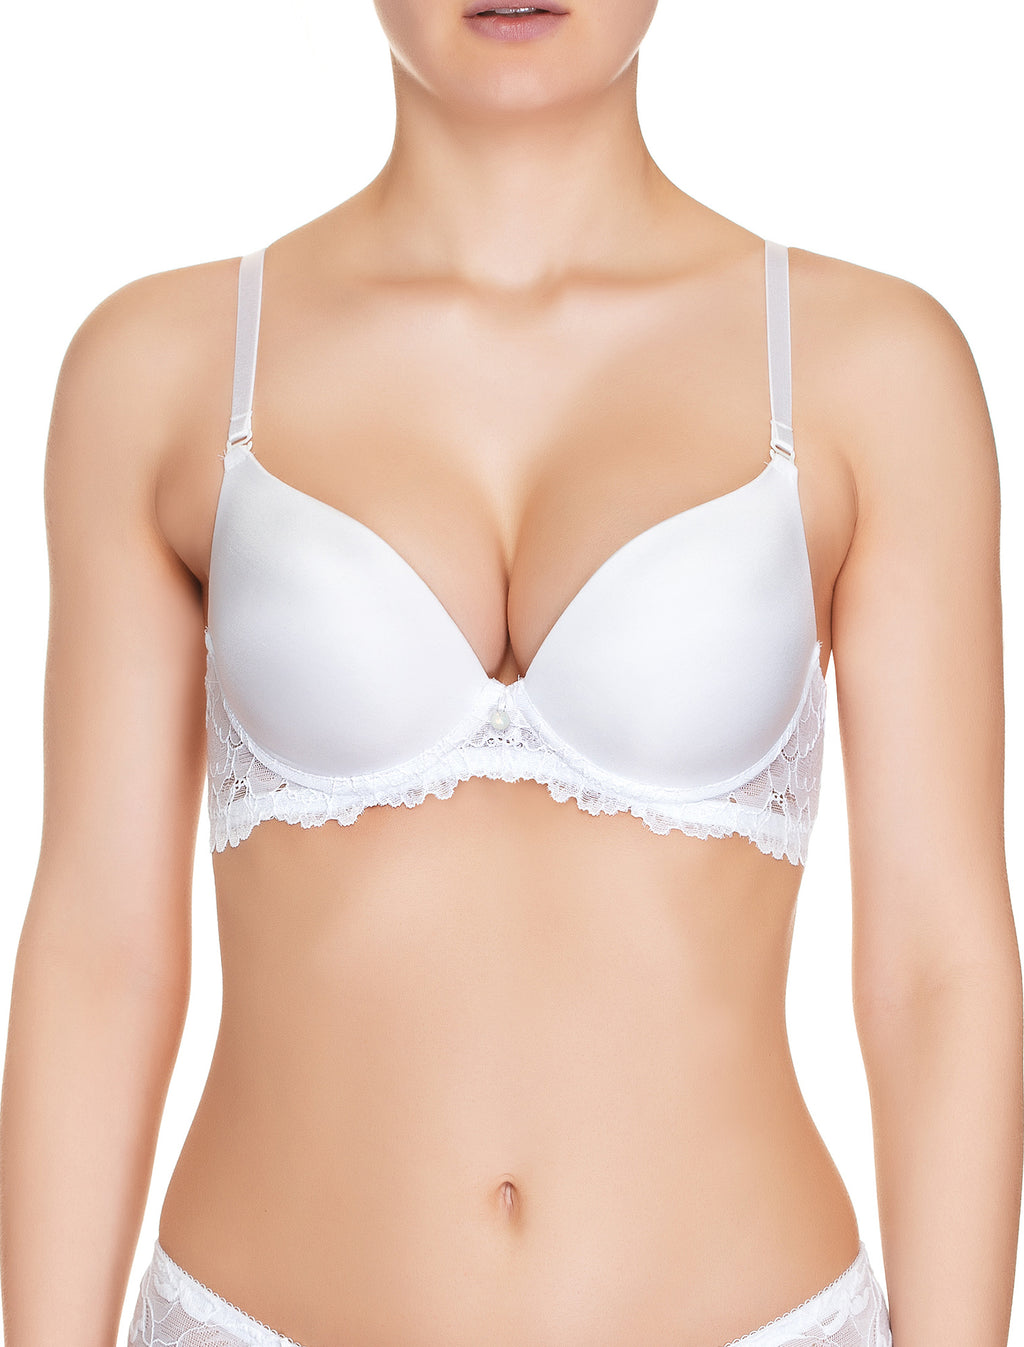 Tenderness Moulded Push-Up T-Shirt Bra